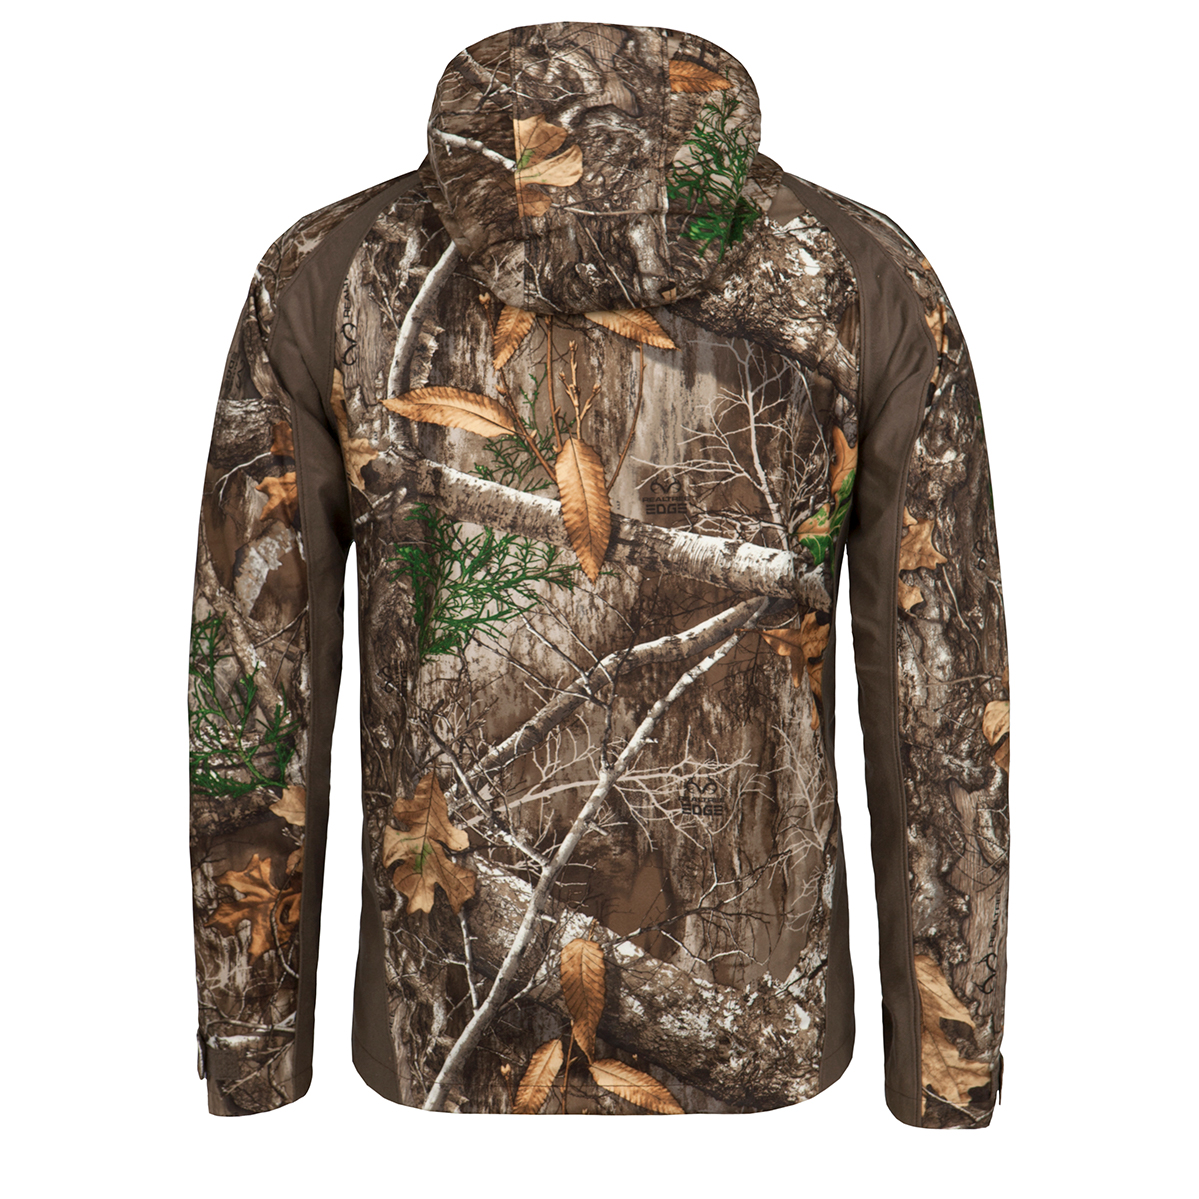 Scent-Blocker-Drencher-Waterproof-Insulated-Jacket-Big-Tall-BigCamo-Back